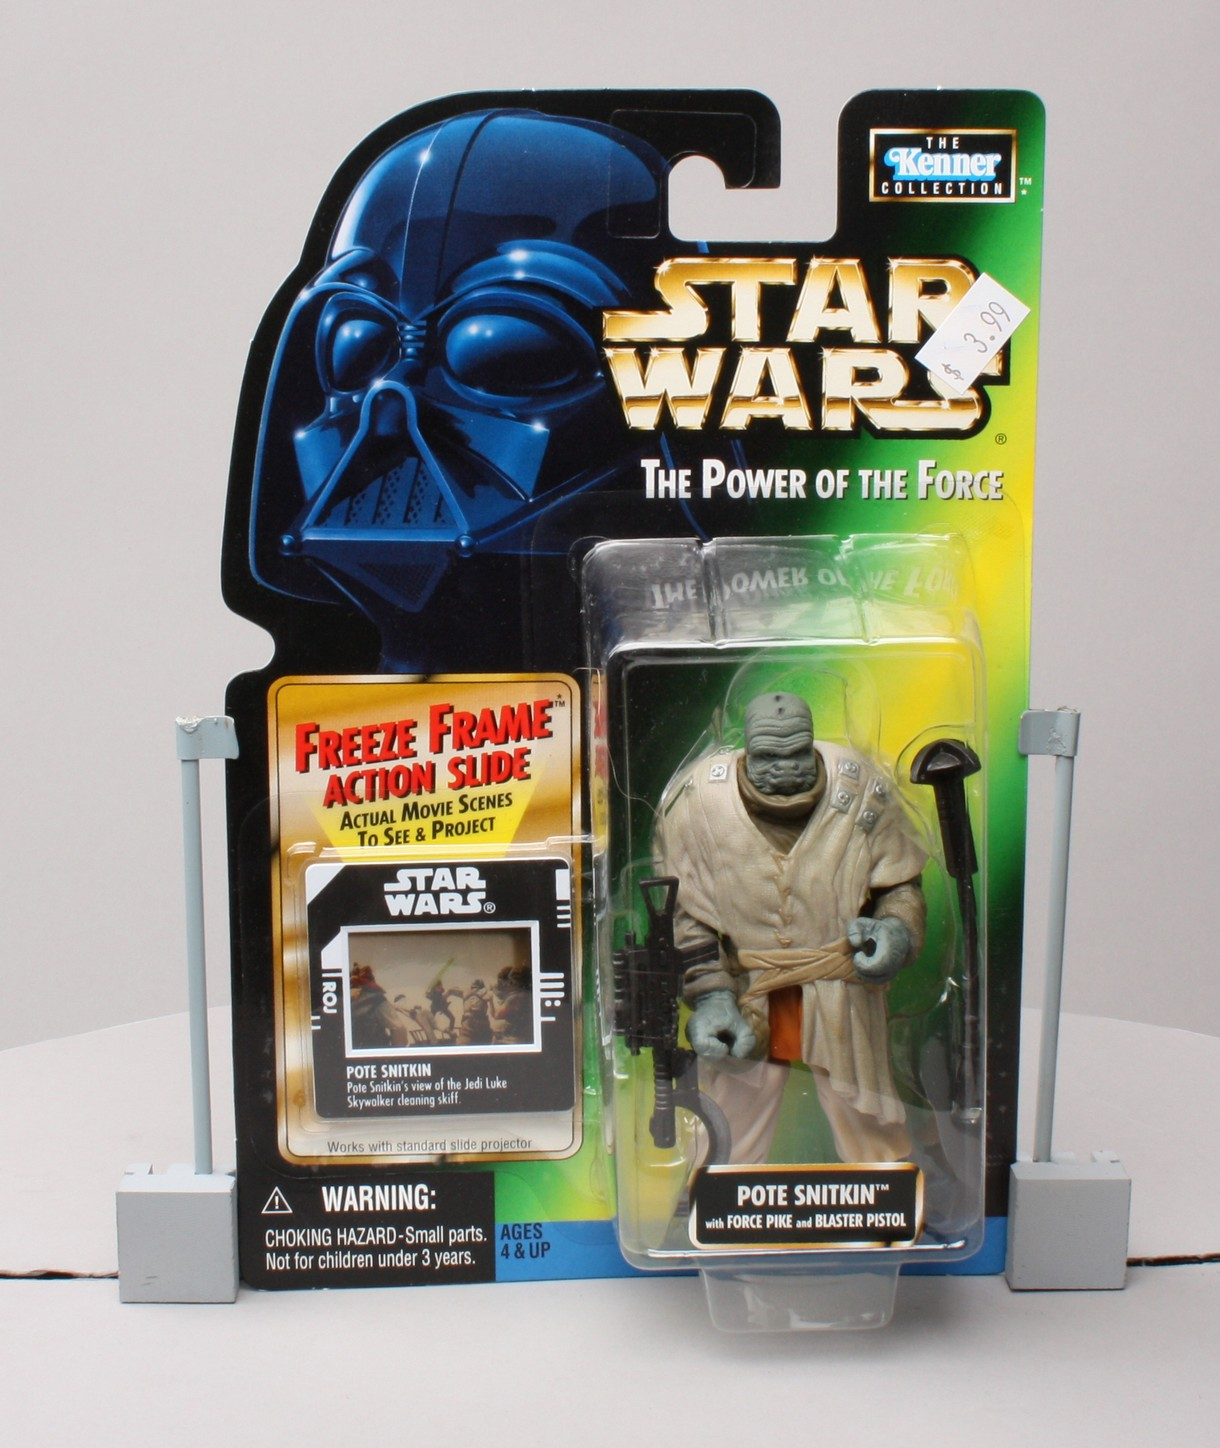 Pote Snitkin with Force Pike and Blaster Pistol